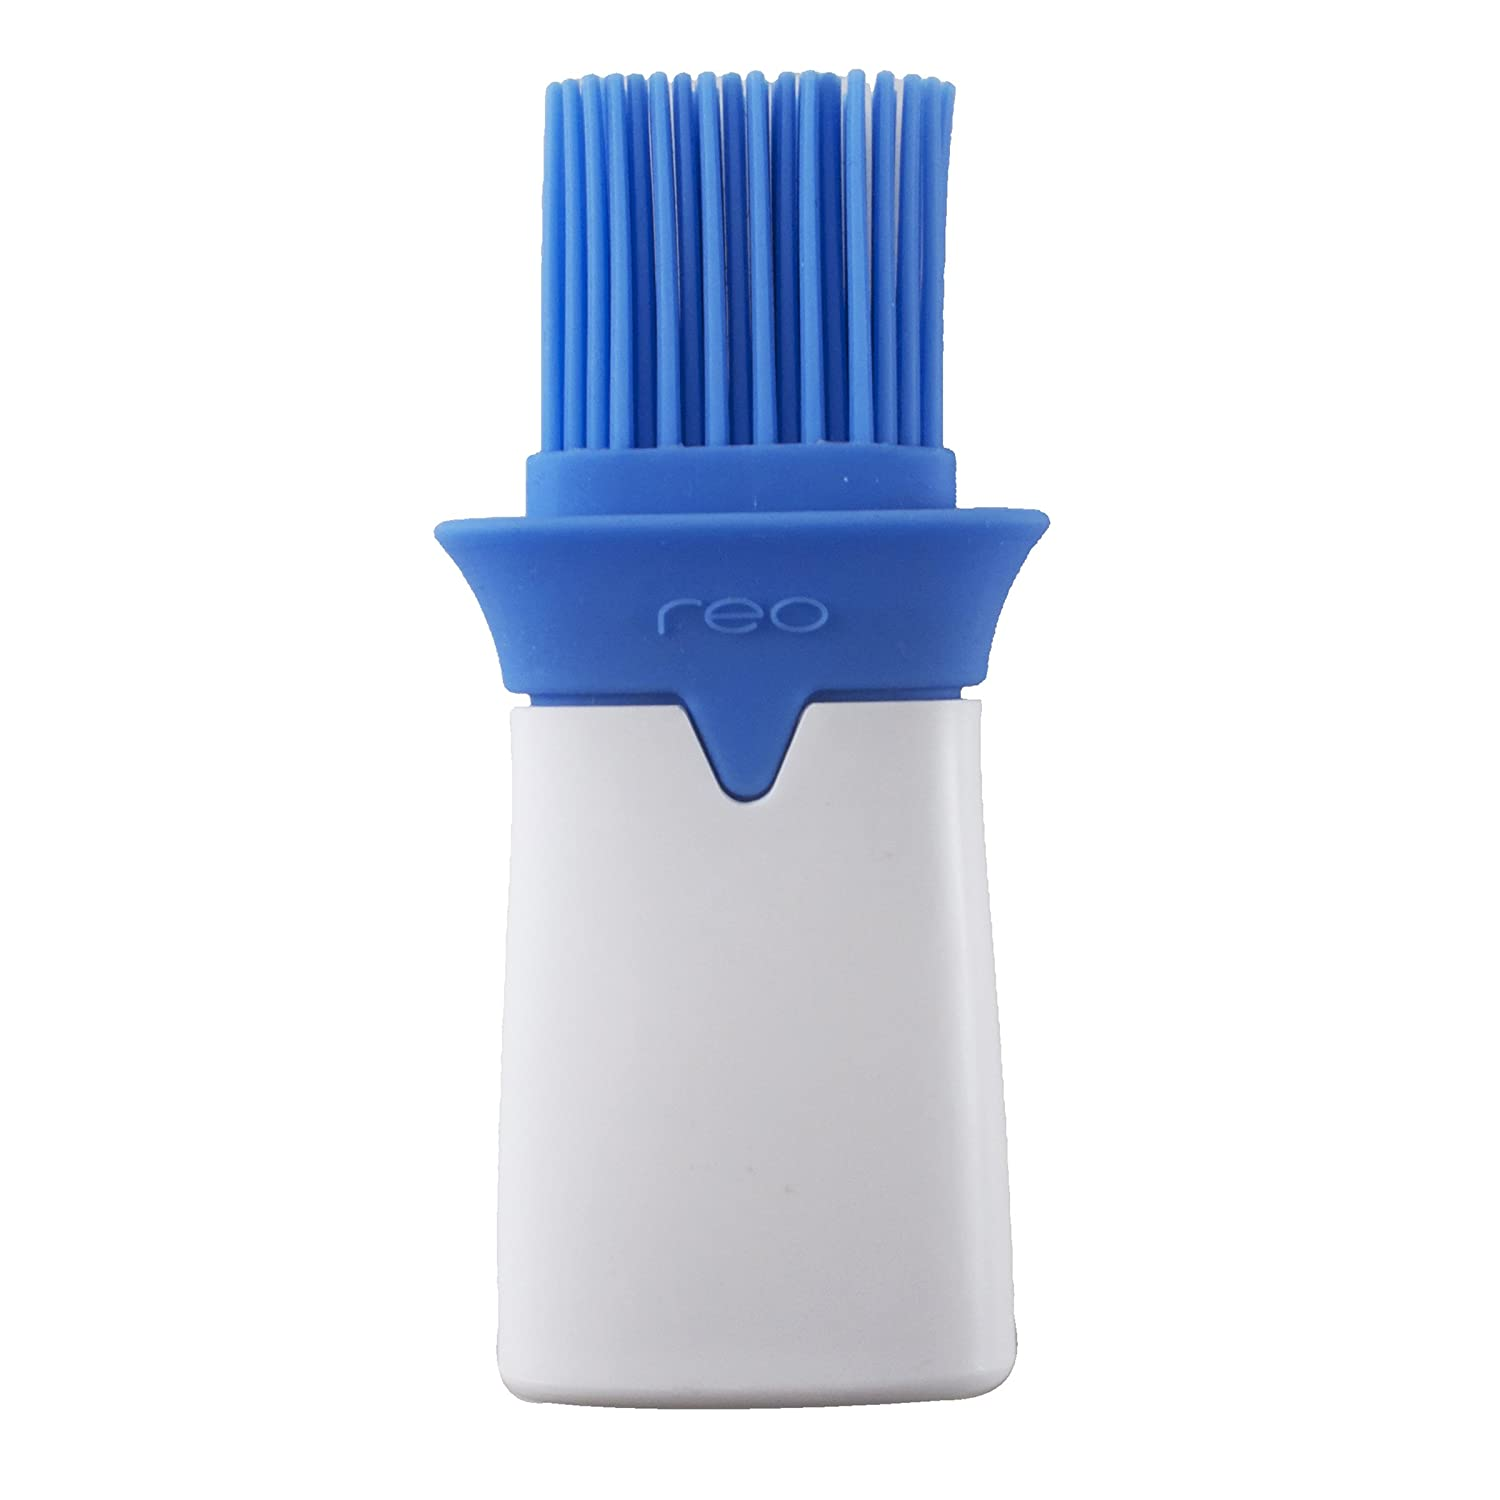 Reo Garlic Shredder Blue 5125741